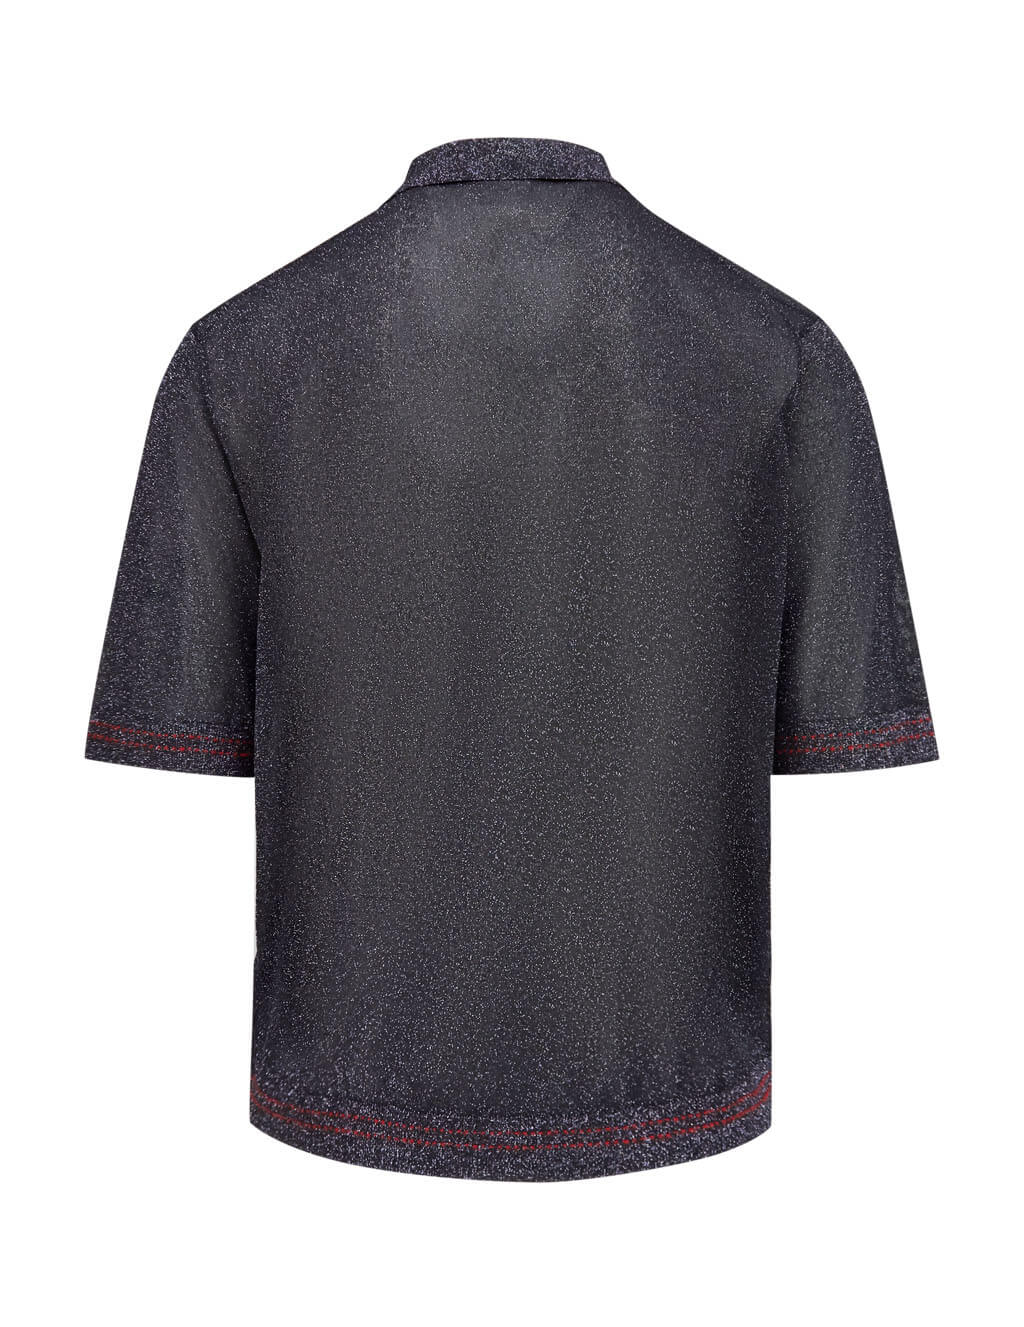 Paul Smith Men's Glitter Shirt M1R376Ta0078370